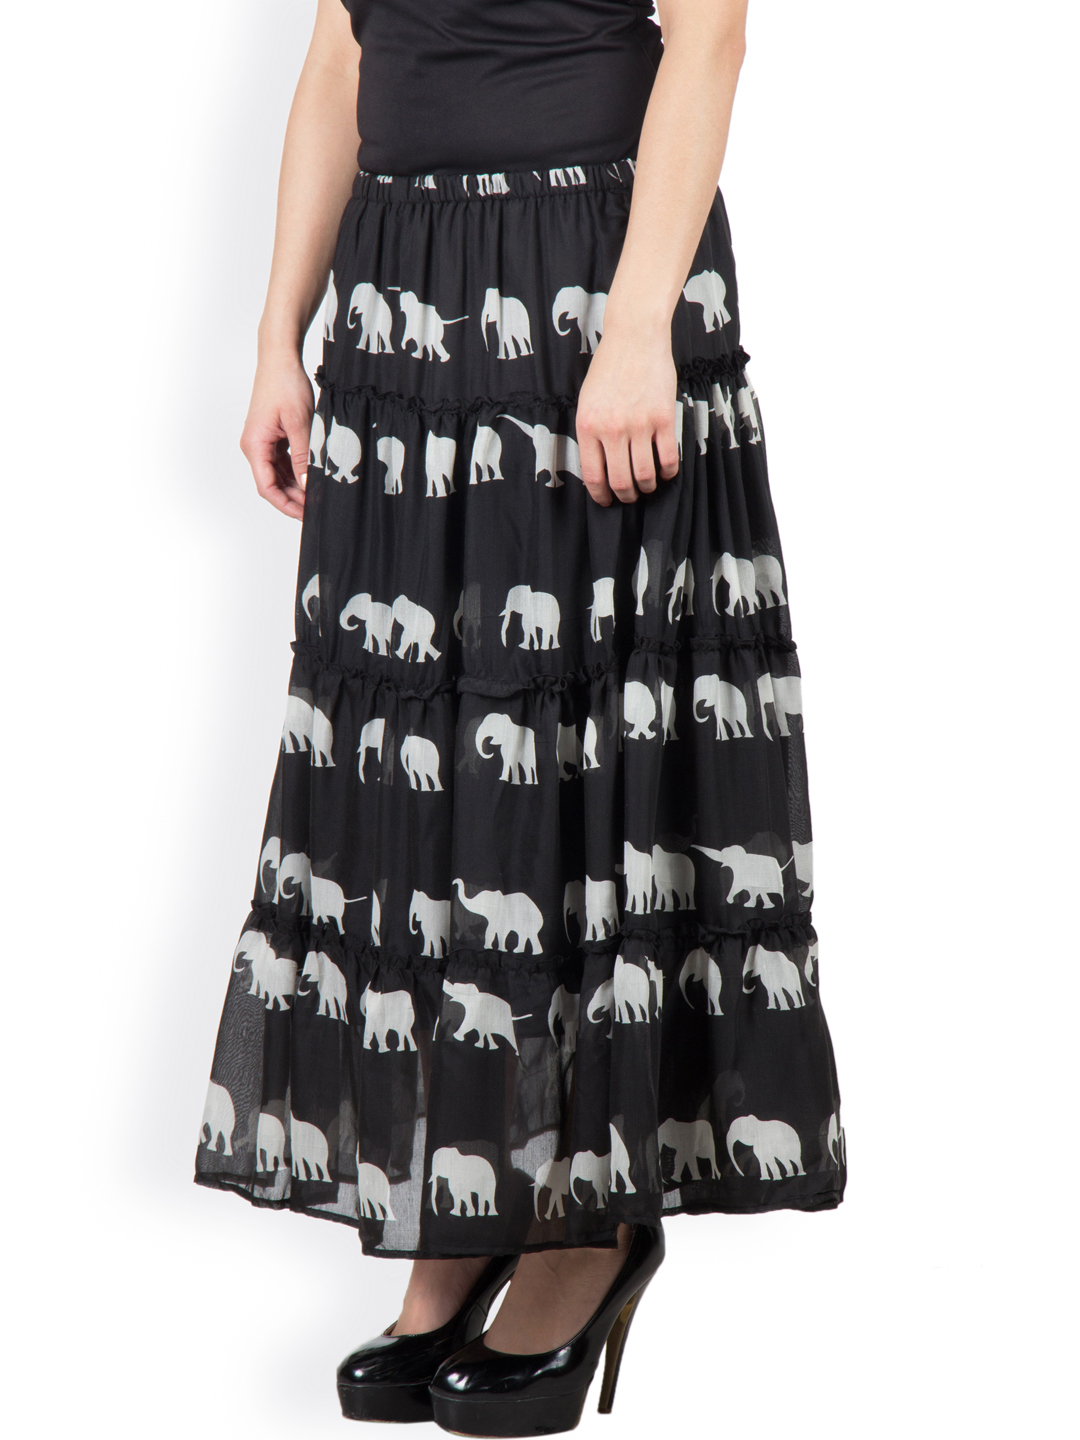 8c48eaf9f0 Roll over image to zoom in. special elephant print cotton layered skirt  with lining and elasticated waist